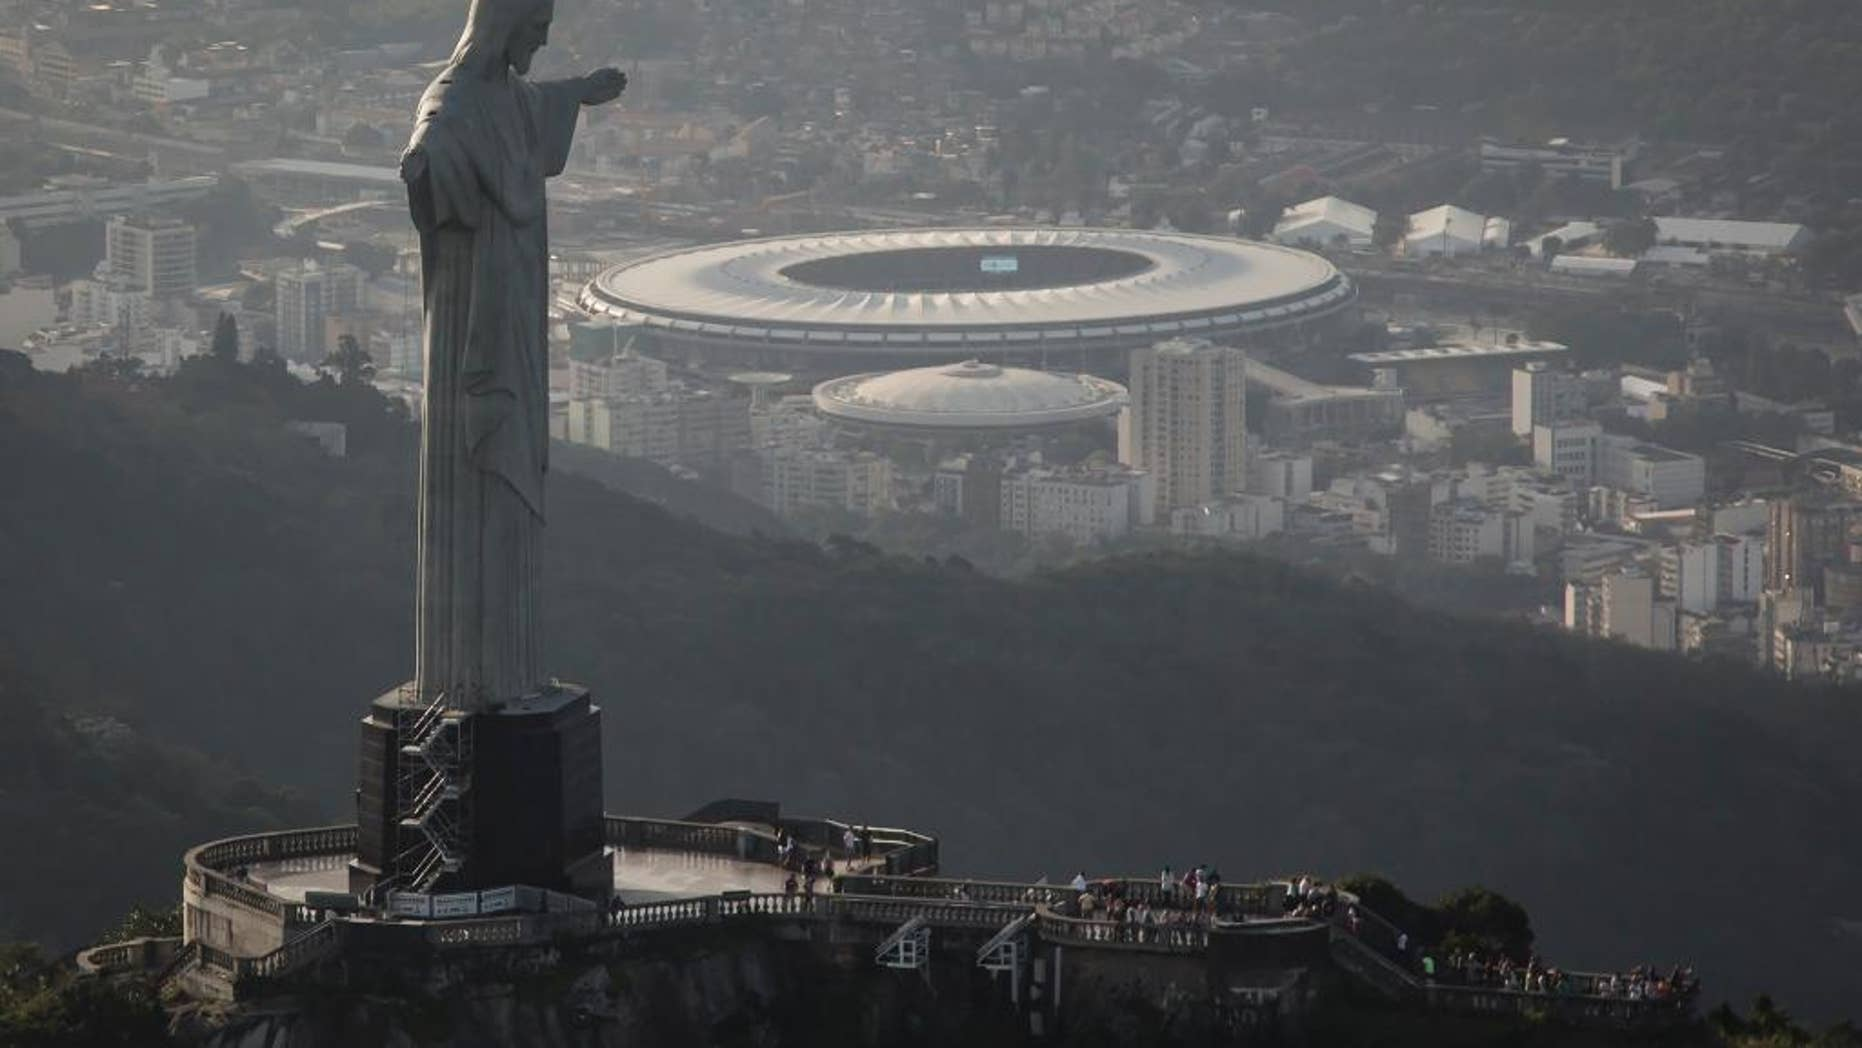 This aerial view shot through an airplane window shows the Maracana stadium behind the Christ the Redeemer statue in Rio de Janeiro, Brazil, Tuesday, May 13, 2014. As opening day for the World Cup approaches, people continue to stage protests, some about the billions of dollars spent on the World Cup at a time of social hardship, but soccer is still a unifying force. The international soccer tournament will be the first in the South American nation since 1950. (AP Photo/Felipe Dana)